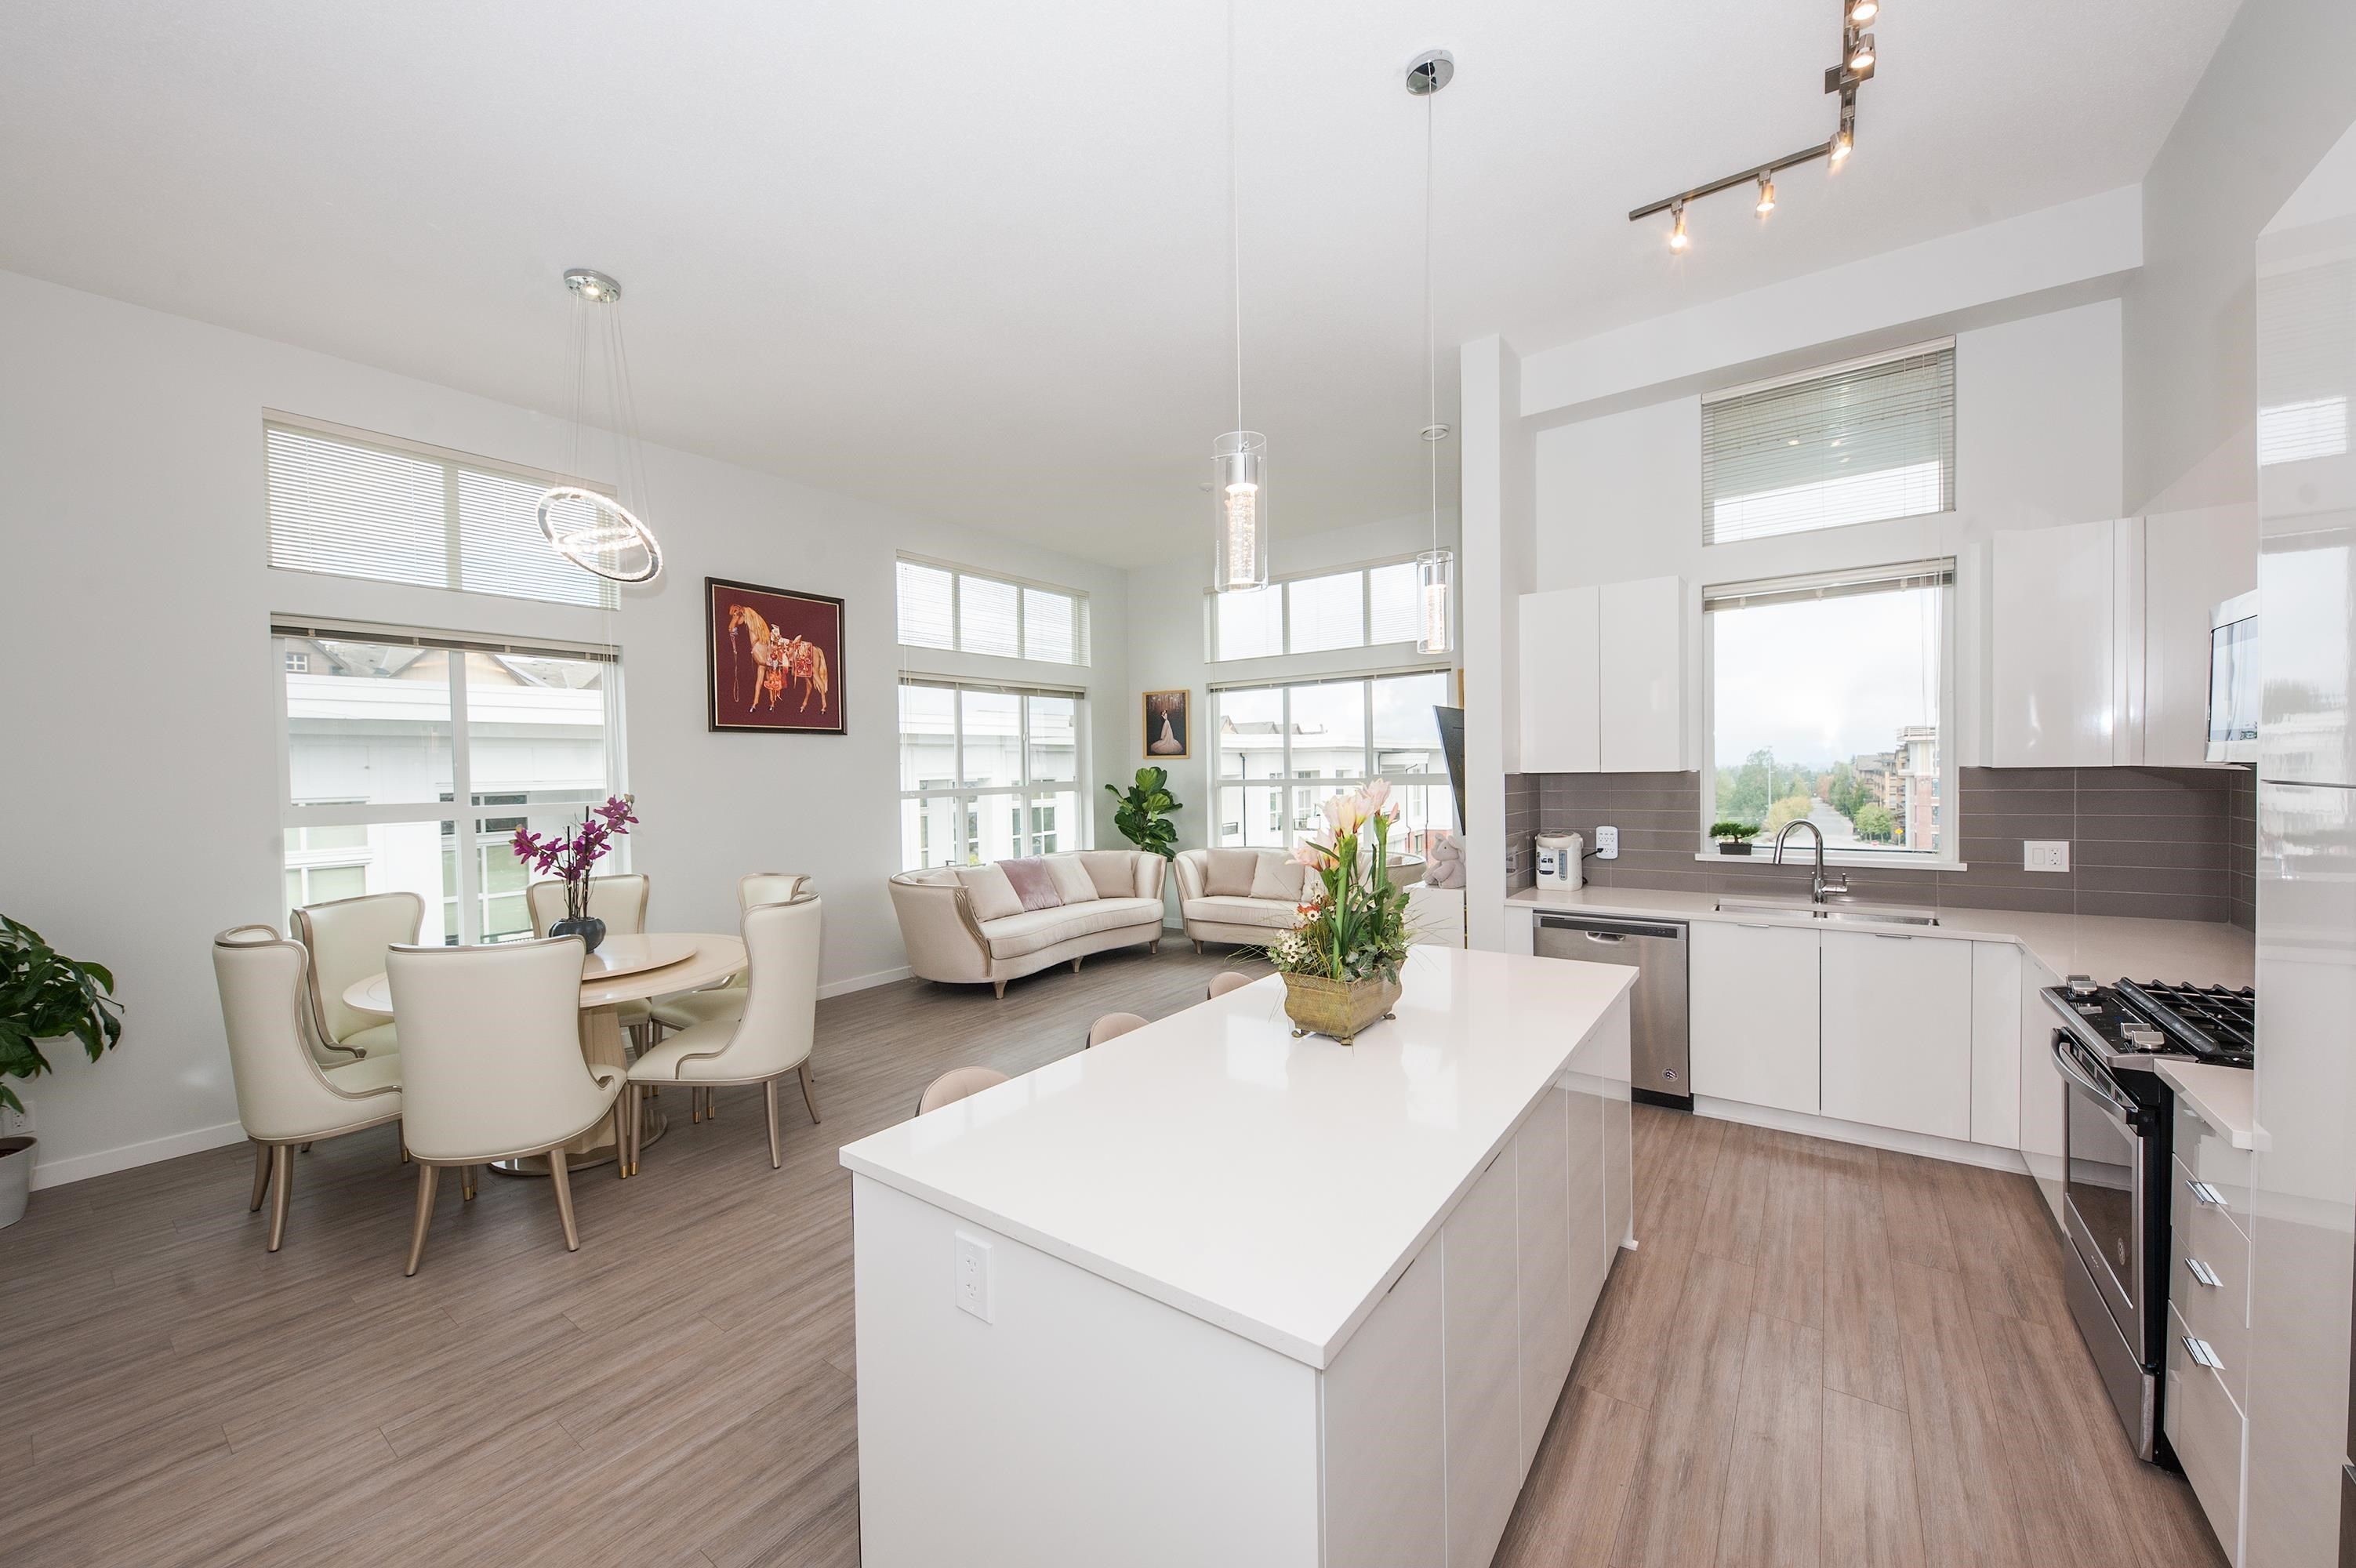 """Main Photo: D419 8150 207 Street in Langley: Willoughby Heights Condo for sale in """"Union Park"""" : MLS®# R2623488"""